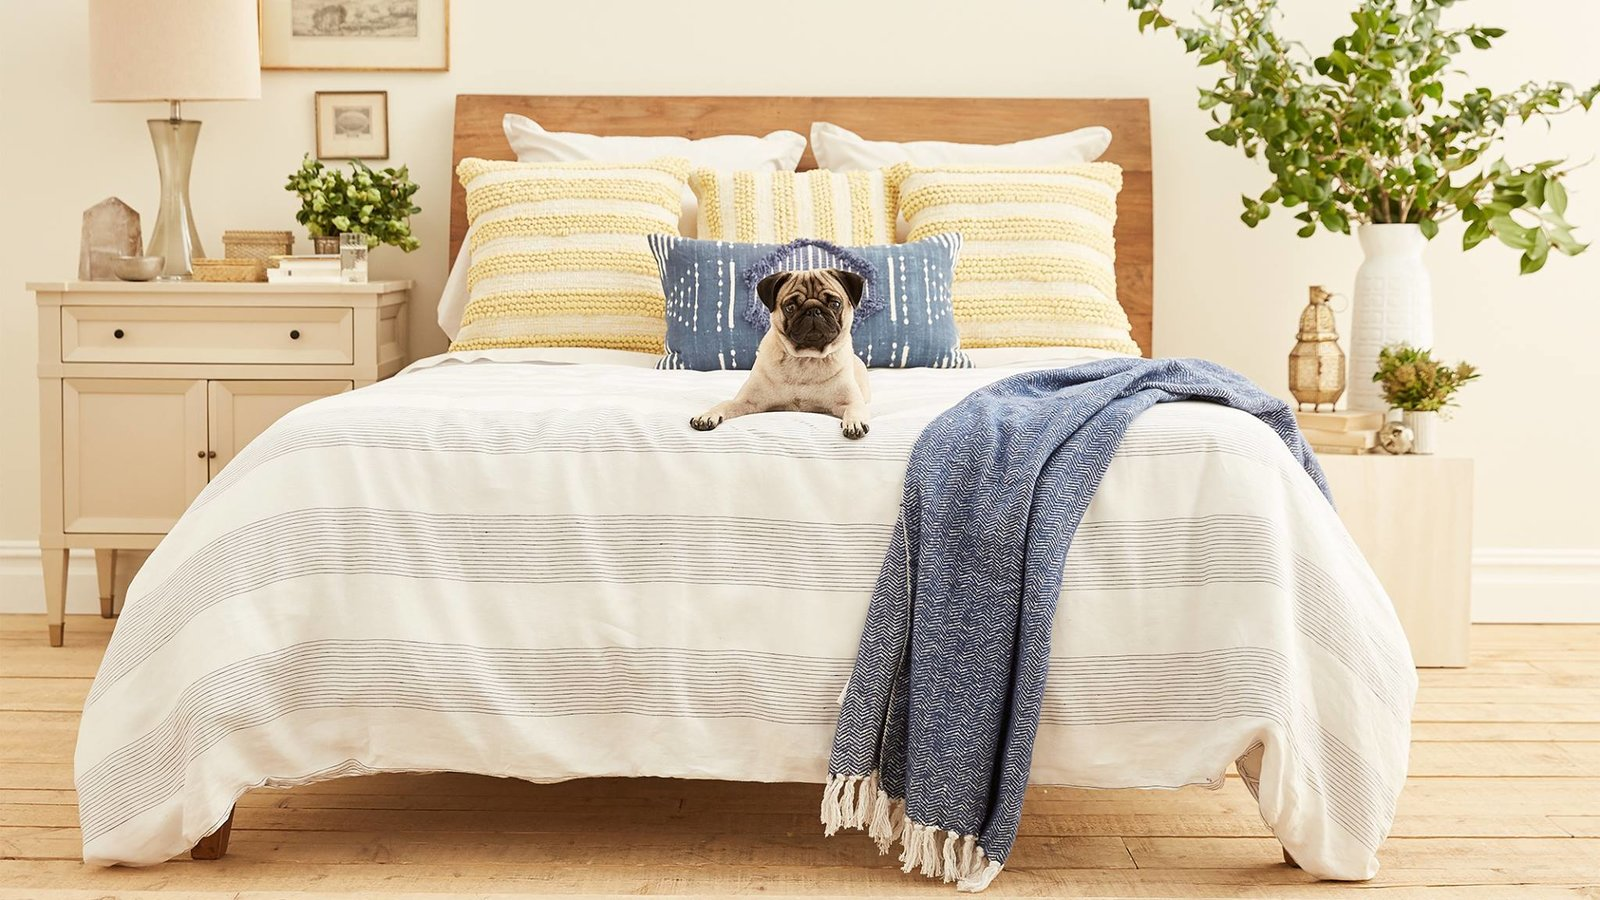 Photo 9 of 13 in The Best Places to Buy Hotel-Quality Bedding That Won't Break the Bank